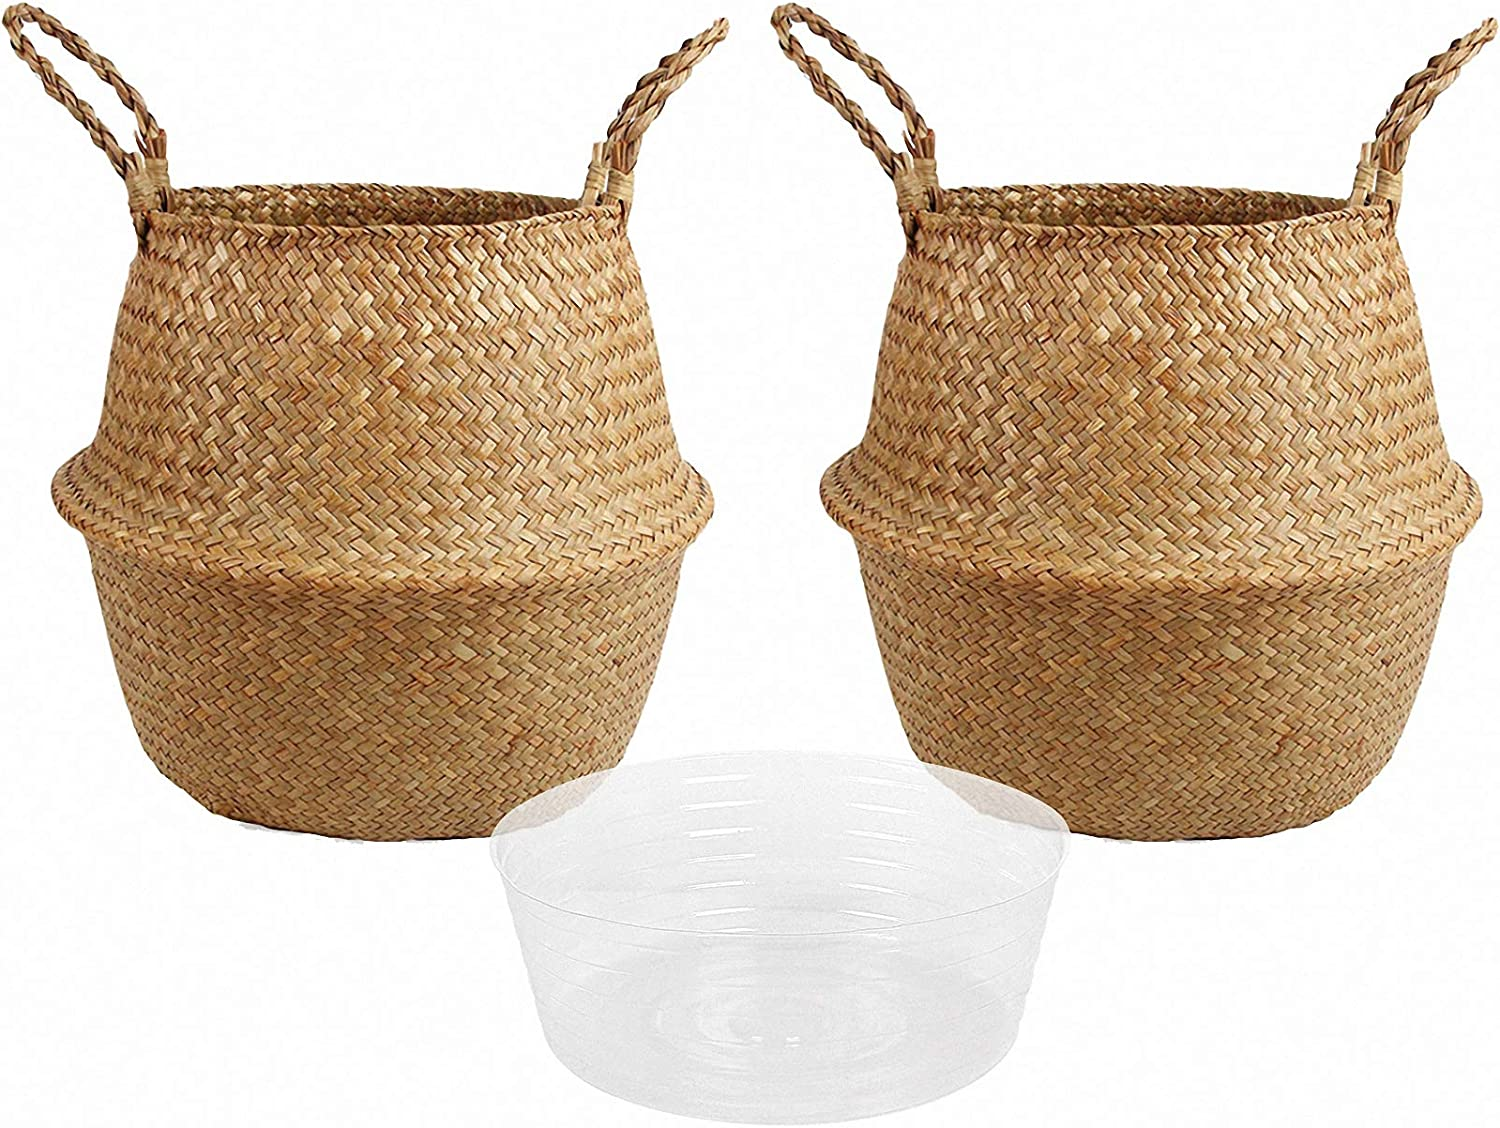 Laundry BlueMake Woven Seagrass Belly Basket with Handles for Storage Plant Pot Basket,Toy Picnic and Grocery Basket with Plastic Tray Small,White